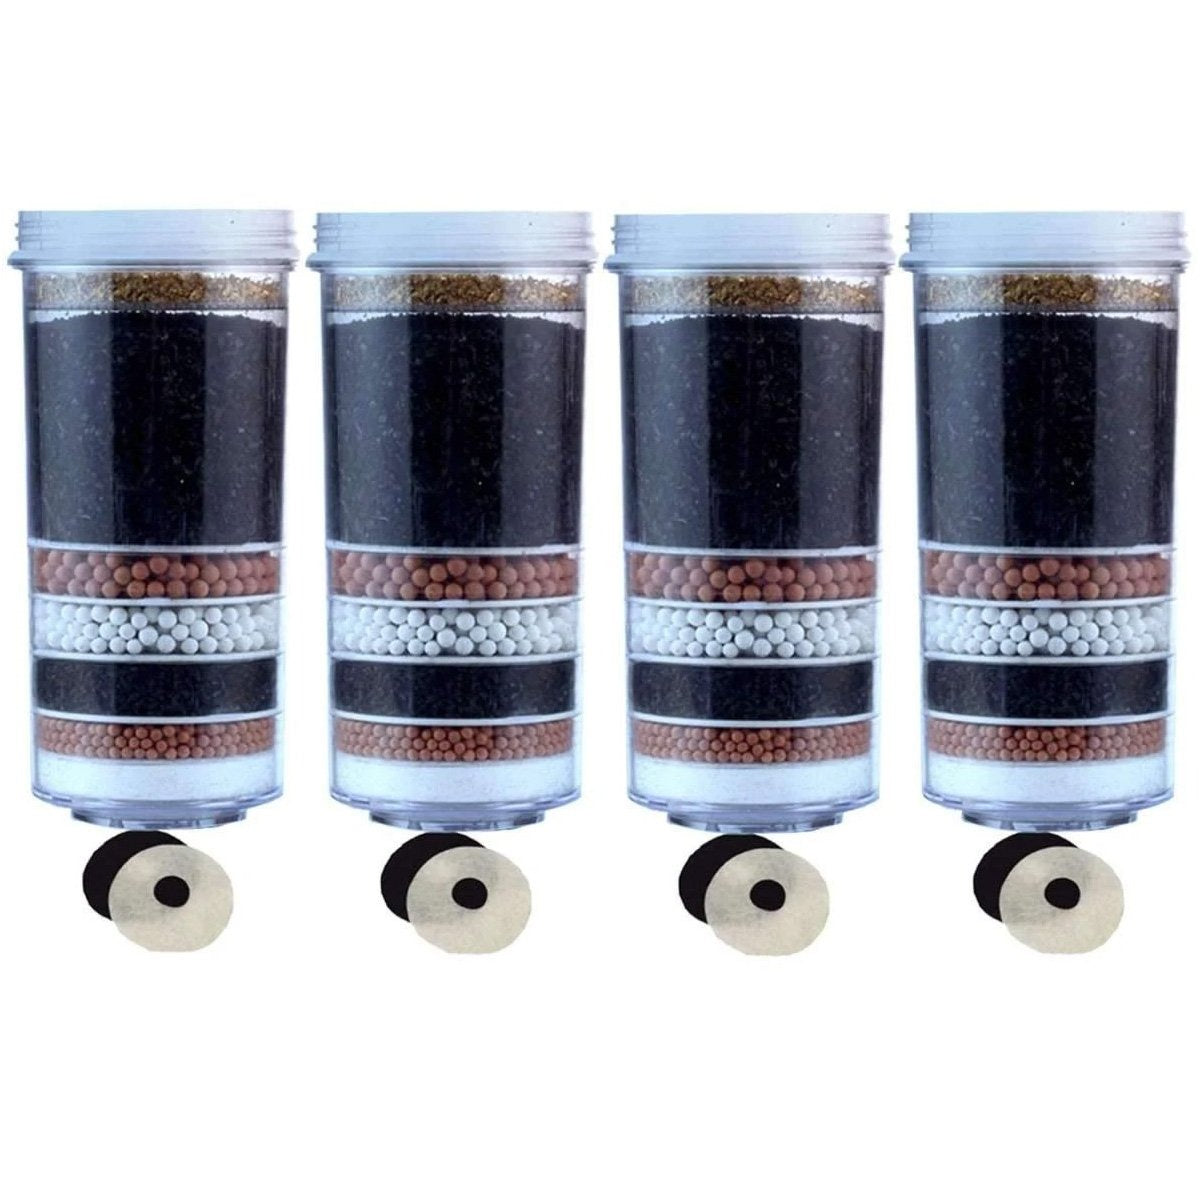 Aimex Water Filter 8 Stage Cartridge Activated Charcoal Ceramic Replacement Filter - MDMAustralian